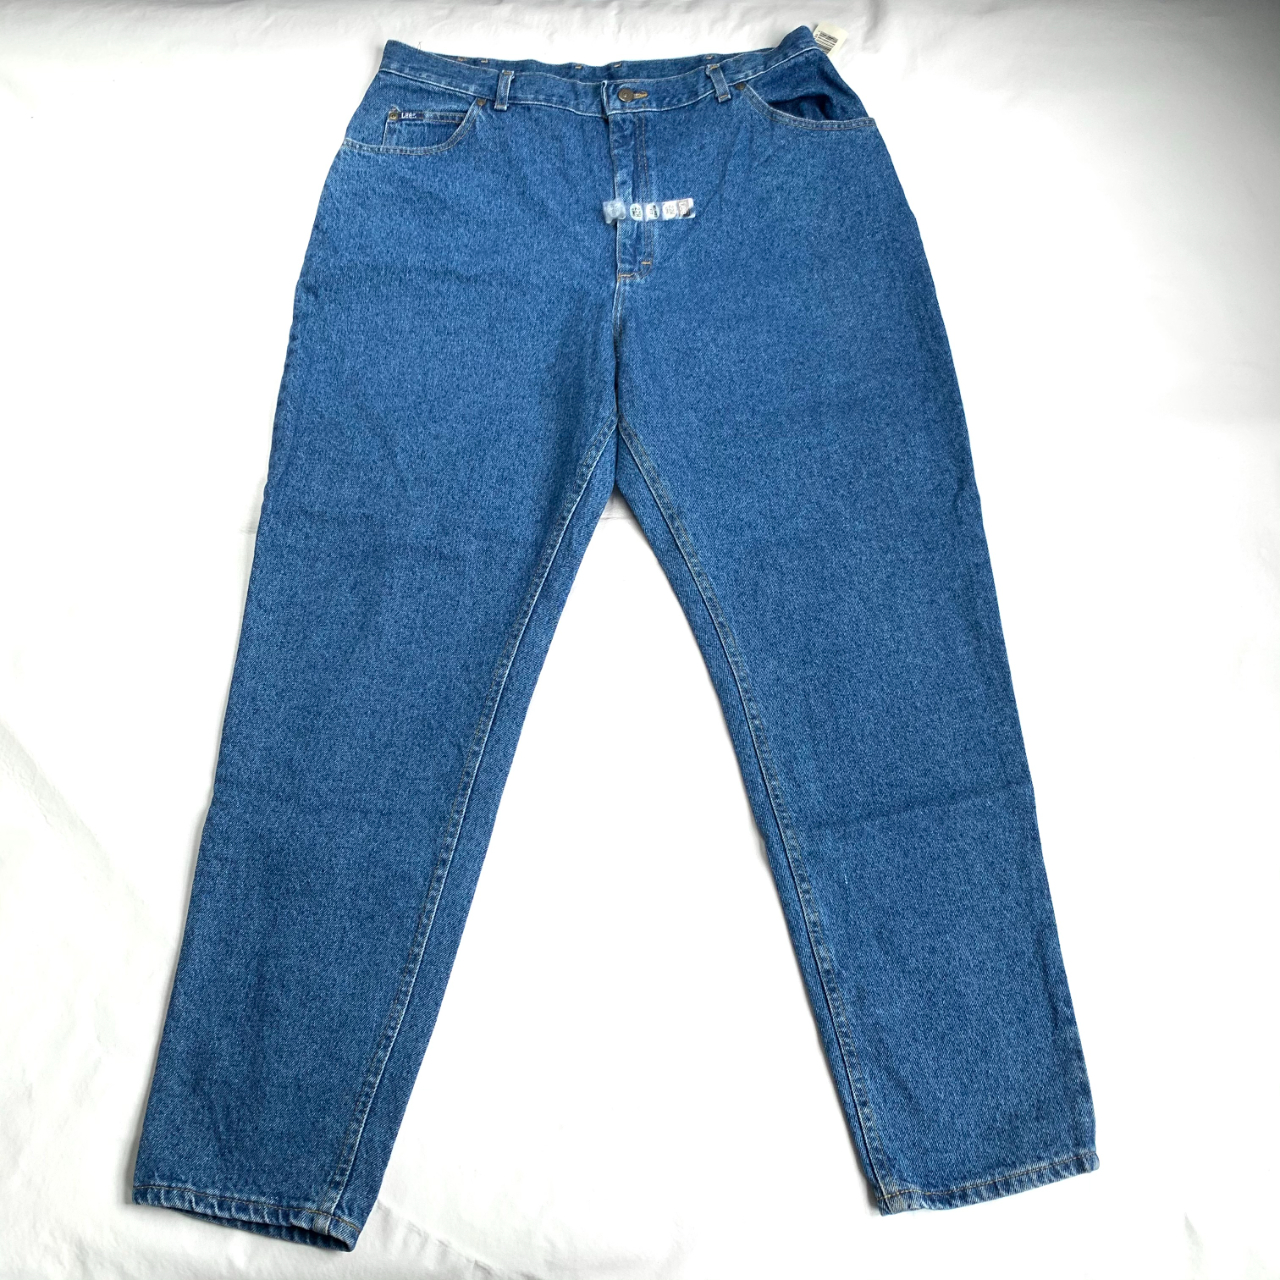 Product Image 1 - Vintage 90s Lee jeans, relaxed